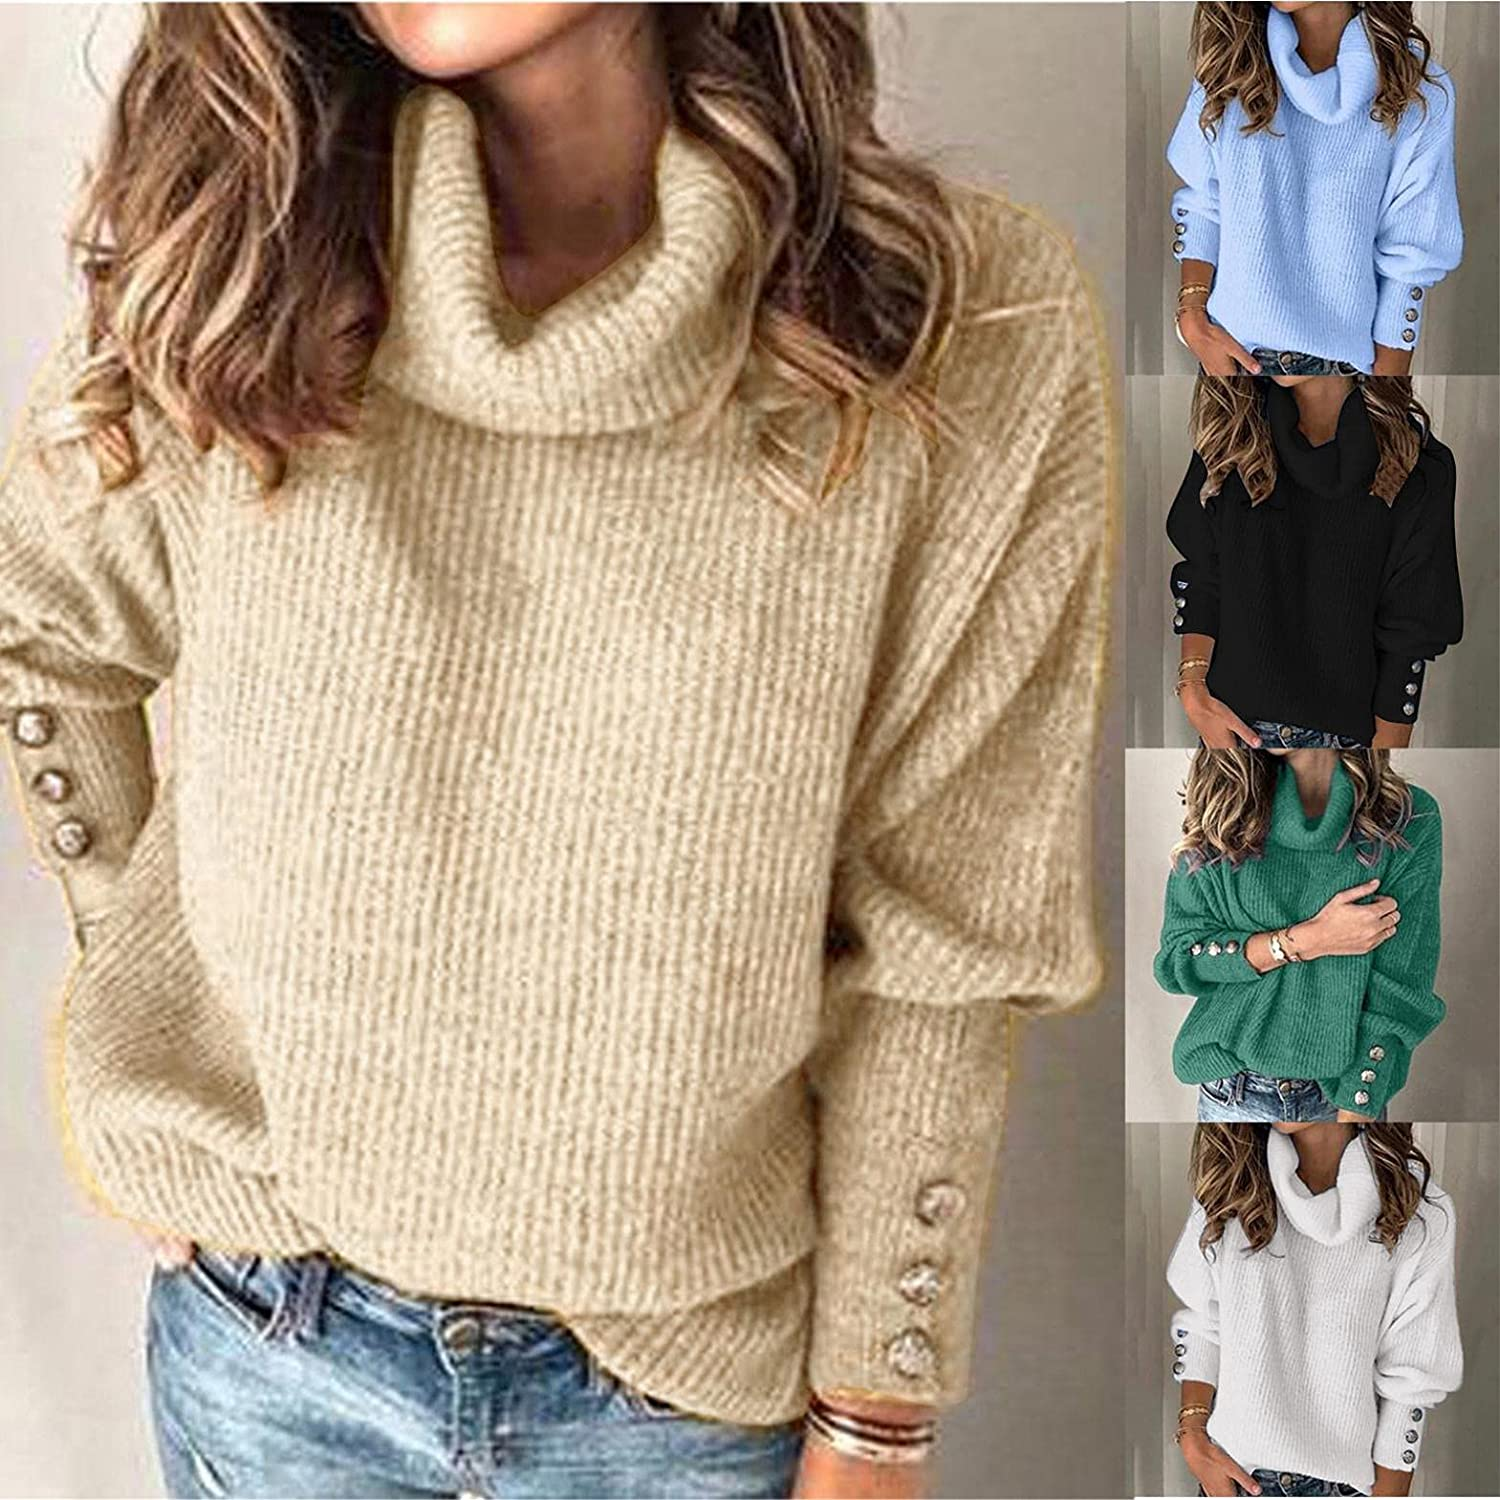 Gibobby Sweaters for Women,Women's Oversized Casual Sweaters Long Sleeve Sweatshirts Knitted Cowl Neck Outwear Pullover